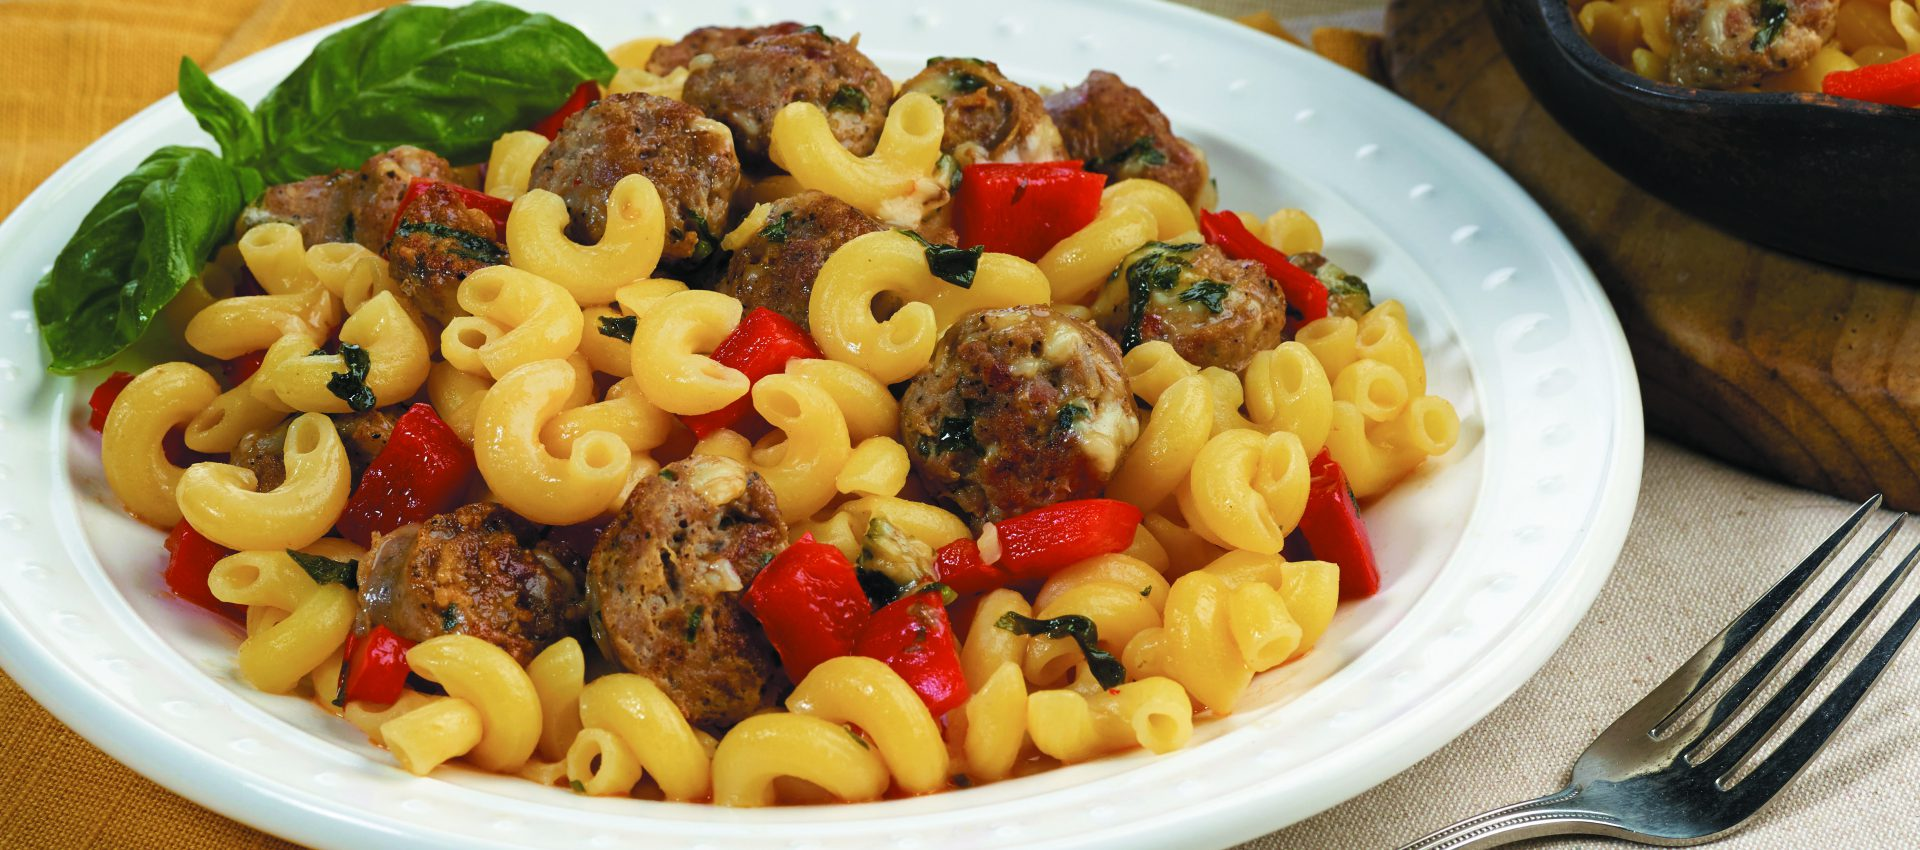 Basil-Sweet-Peppers-Italian-Sausage_4C-1920x850 Basil, Sweet Peppers & Italian Sausage with Elbows